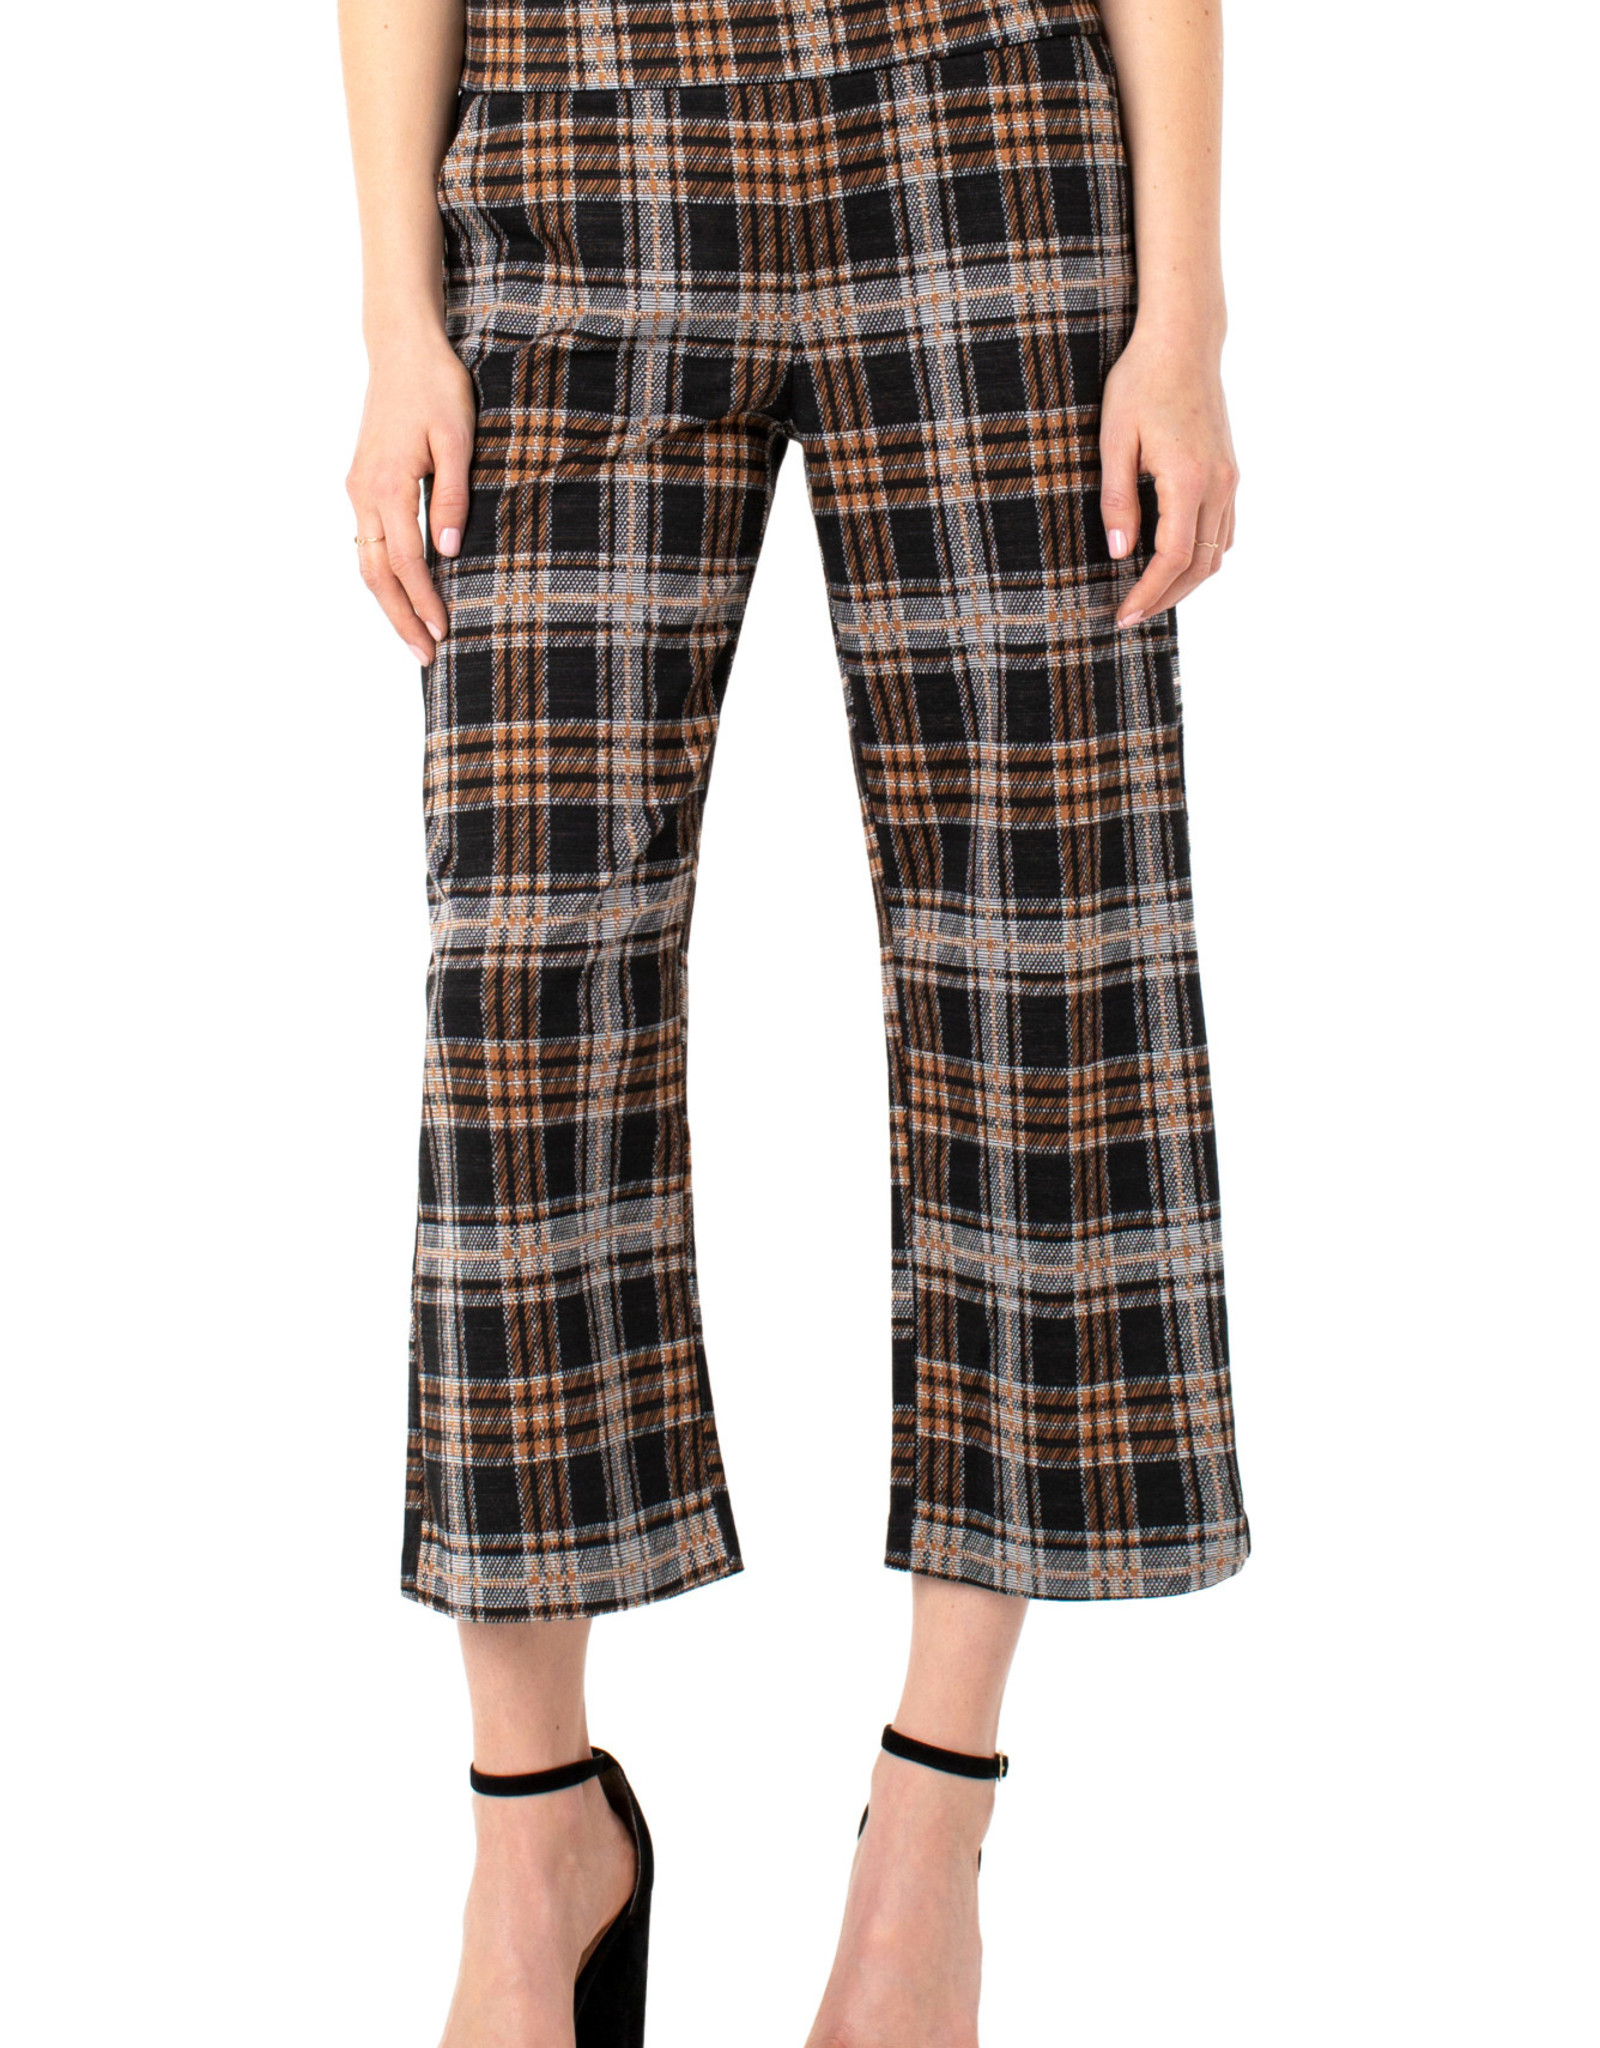 Liverpool Mabel Pull On Wide Leg Pant